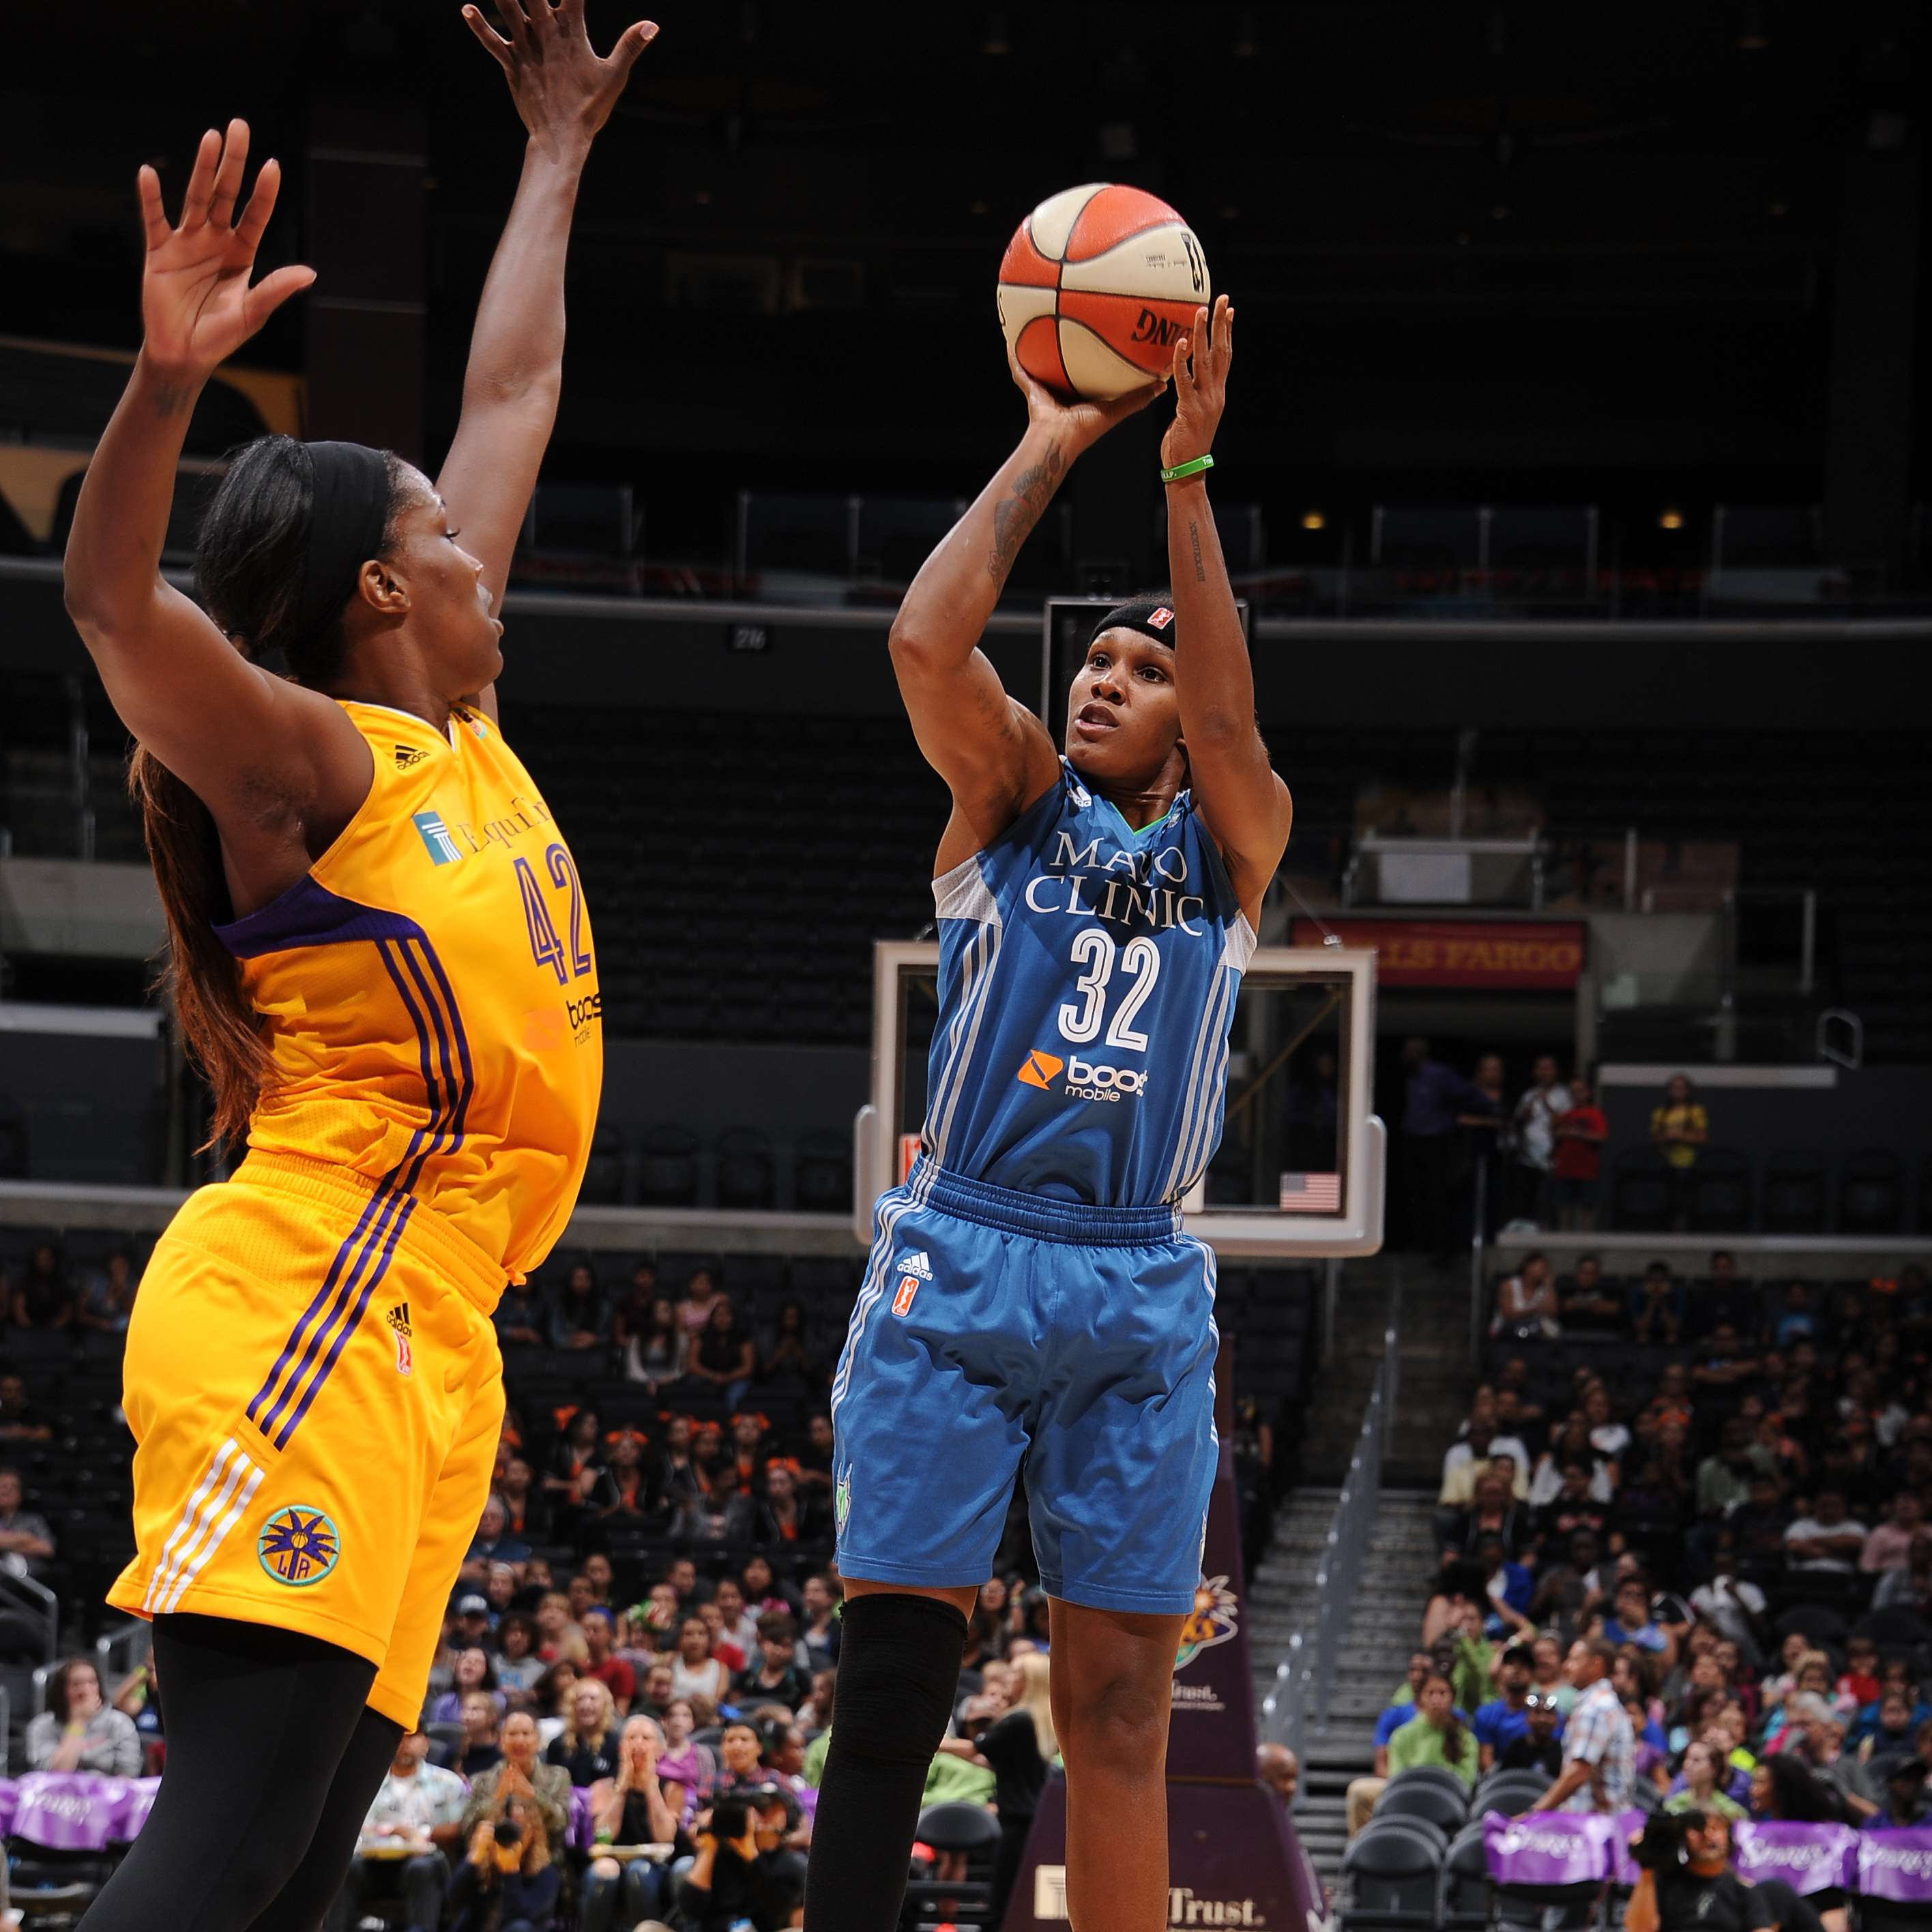 Lynx forward Rebekkah Brunson entered the June 16 contest riding a hot streak, but the Sparks cooled her off.  Brunson finished with just two points and seven rebounds, her lowest totals in a game at that point in season.